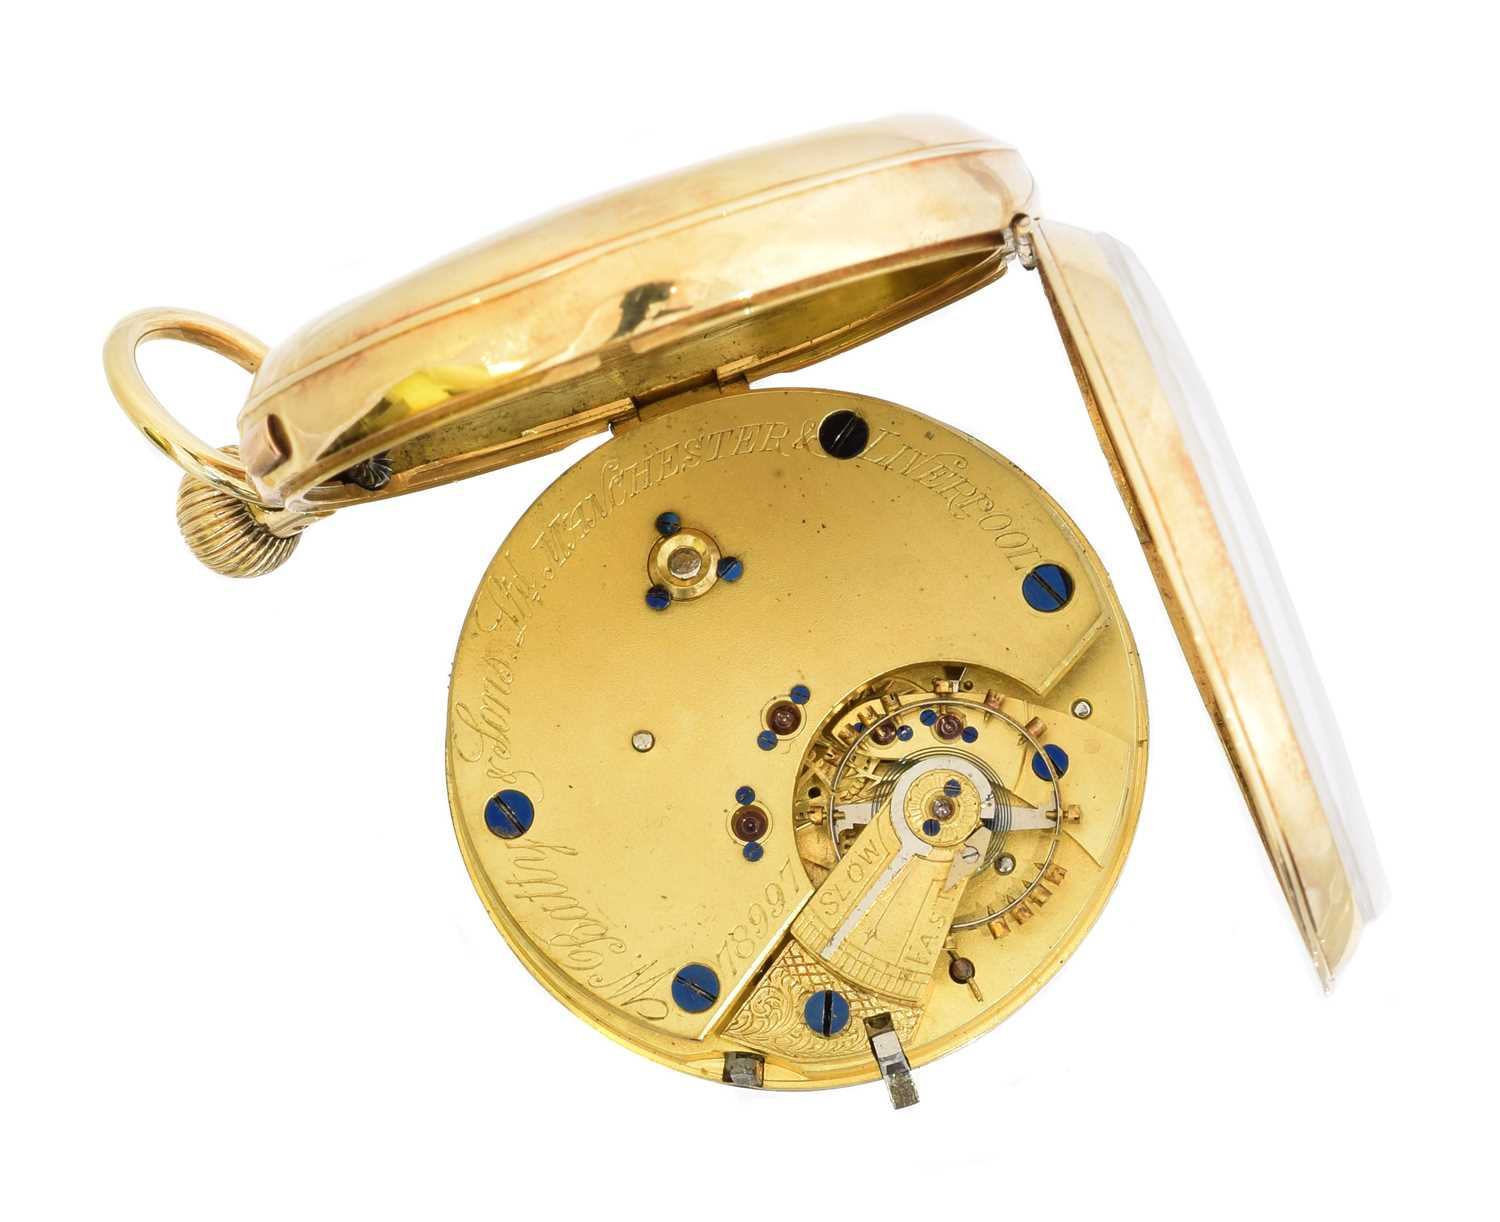 An 18ct gold open face pocket watch by W. Batty & Sons Ltd., - Image 3 of 3